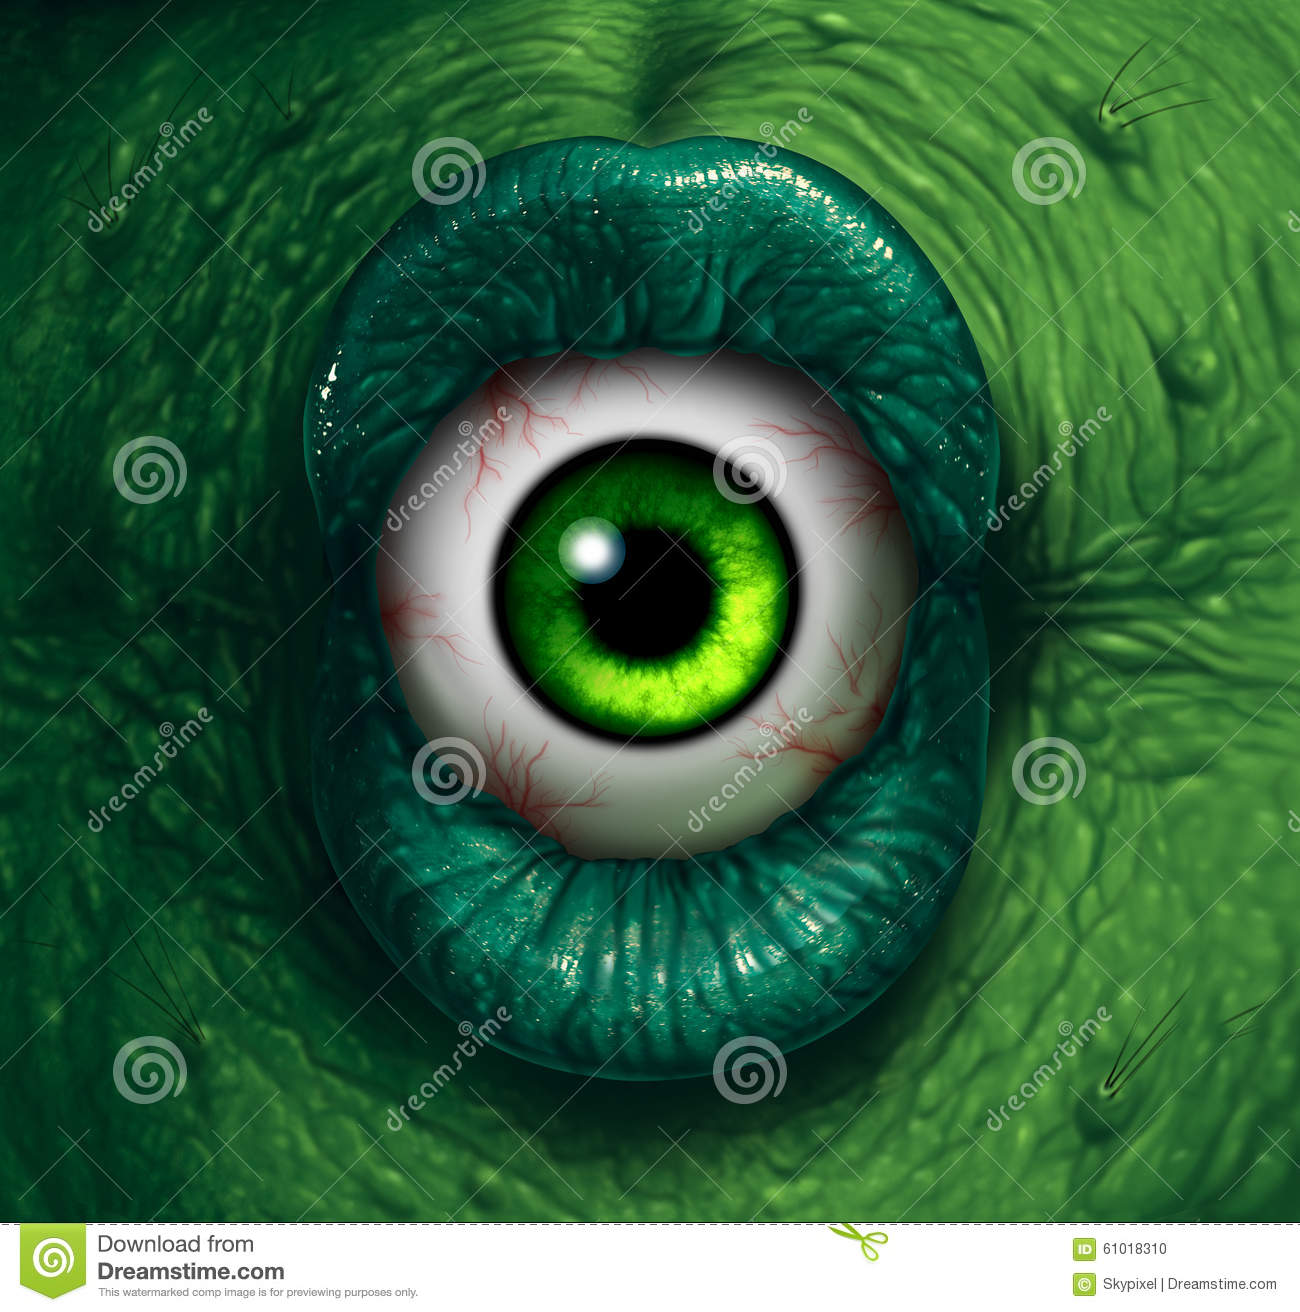 Monster eye halloween ogre demon closeup with evil green lips biting ...